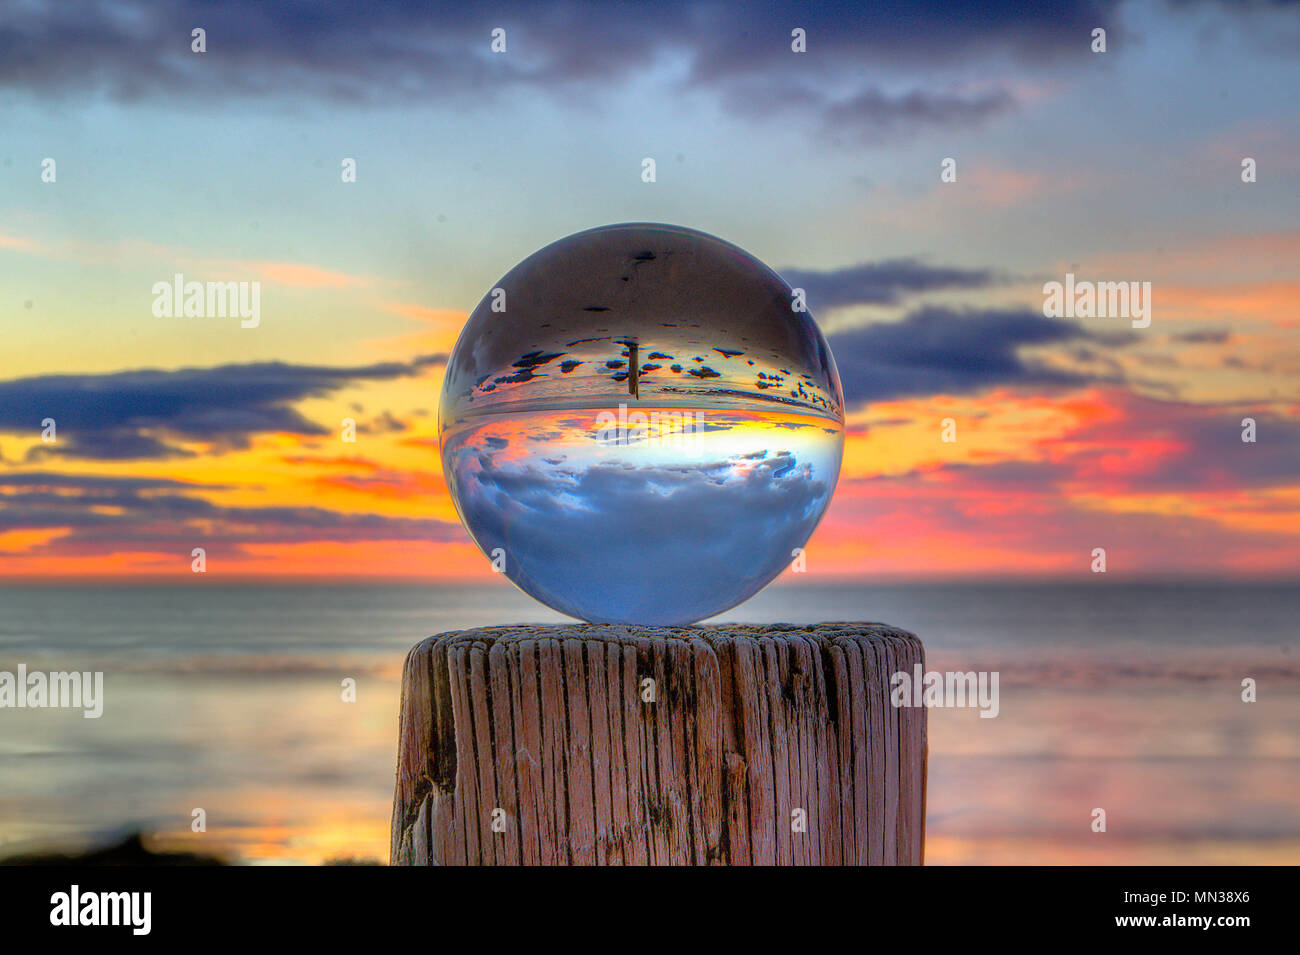 Lensball Photography High Resolution Stock Photography And Images Alamy